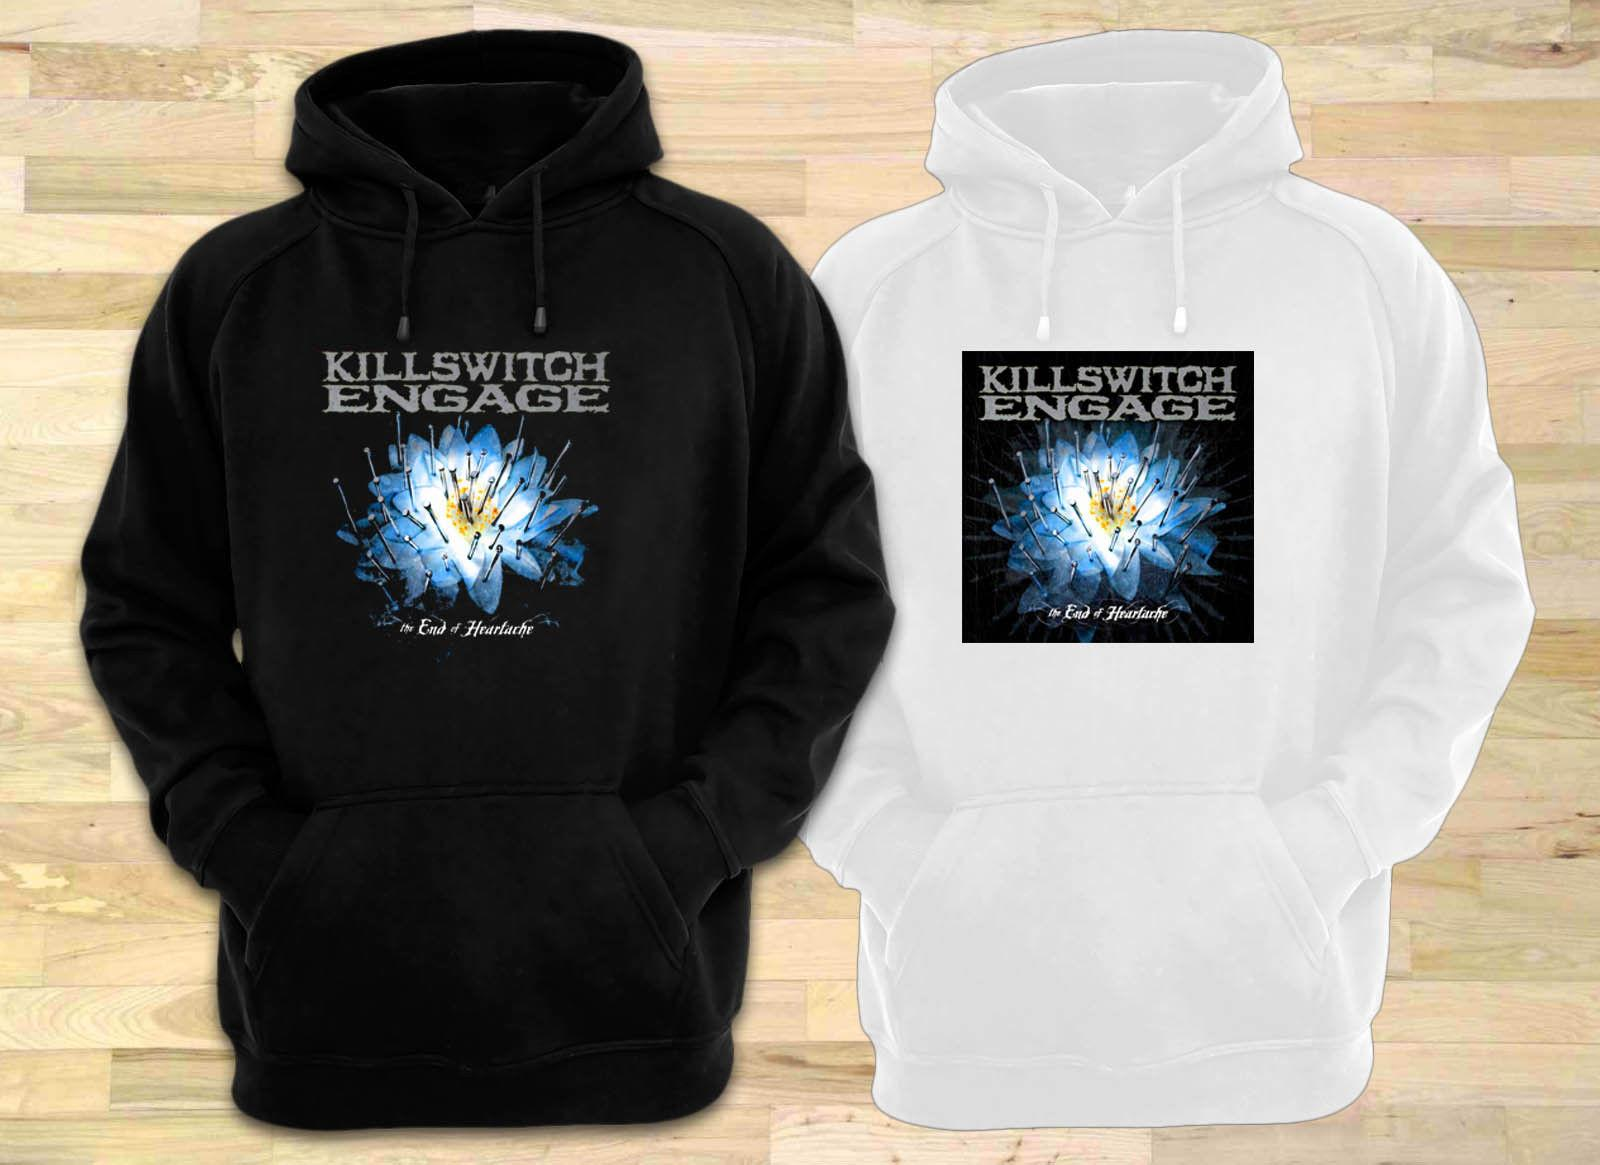 Killswitch Engage The End of Heartache Album Men s Hoodie XS to 2XL